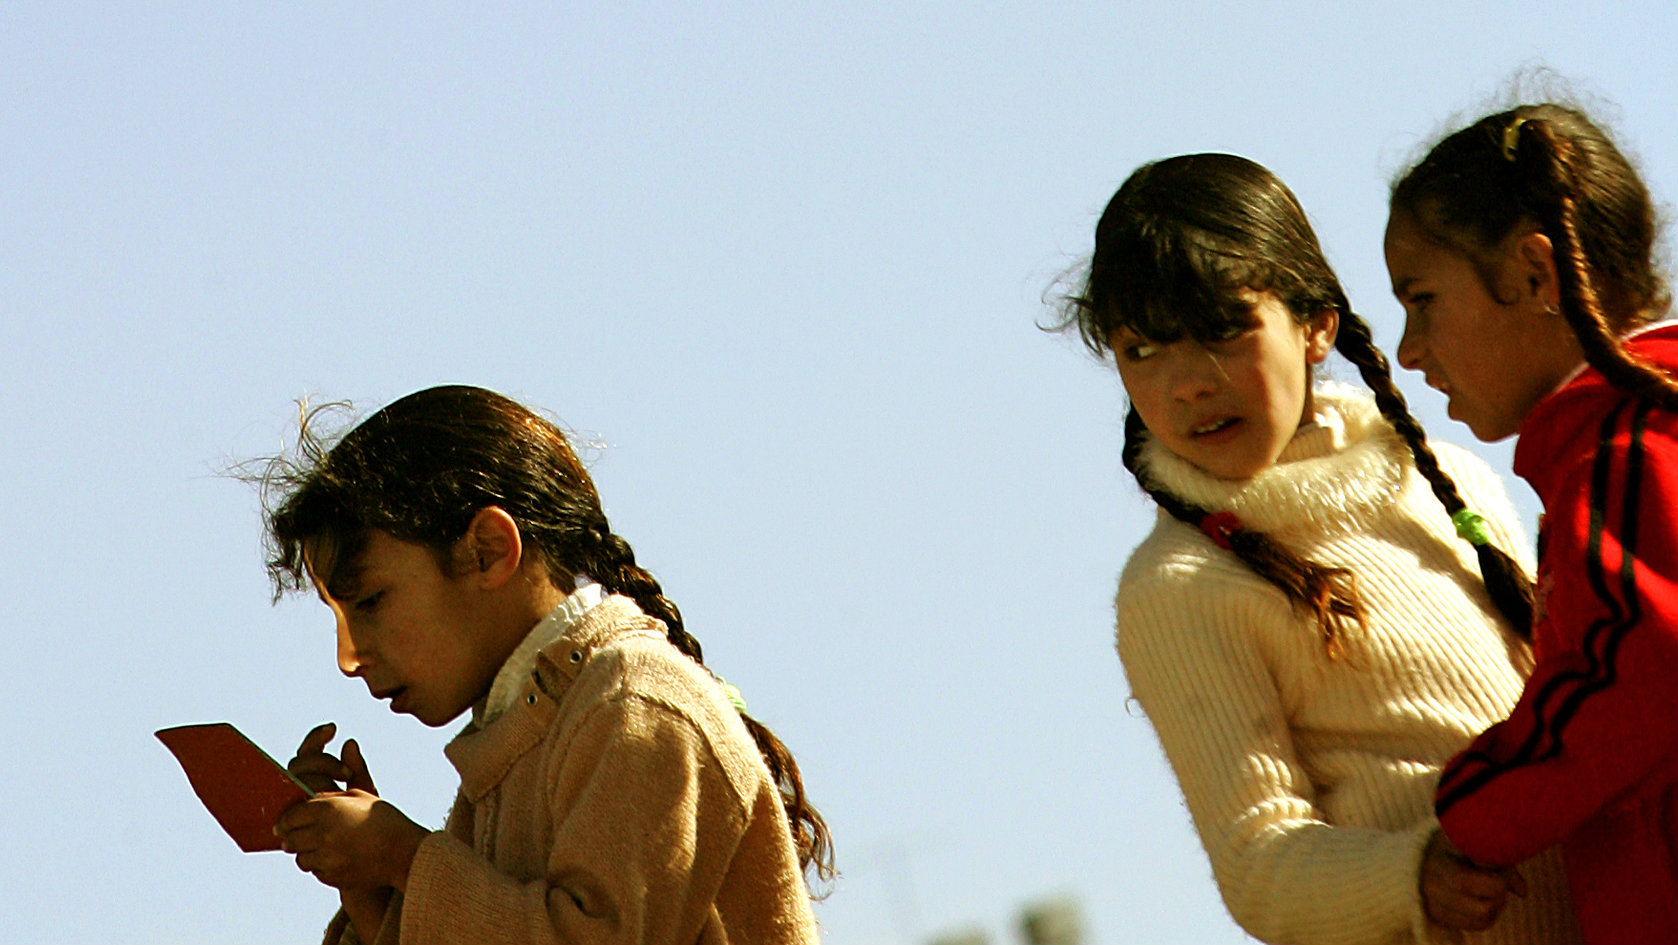 Palestinian girls check their make-up outside a polling station in Hebron January 21, 2006. Palestinian security forces cast the first ballots on Saturday in the Palestinian Legislative Council election, voting early before the main national poll next week, the first contested by the militant group Hamas. PICTURES OF THE MONTH JANUARY 2006 REUTERS/Damir Sagolj